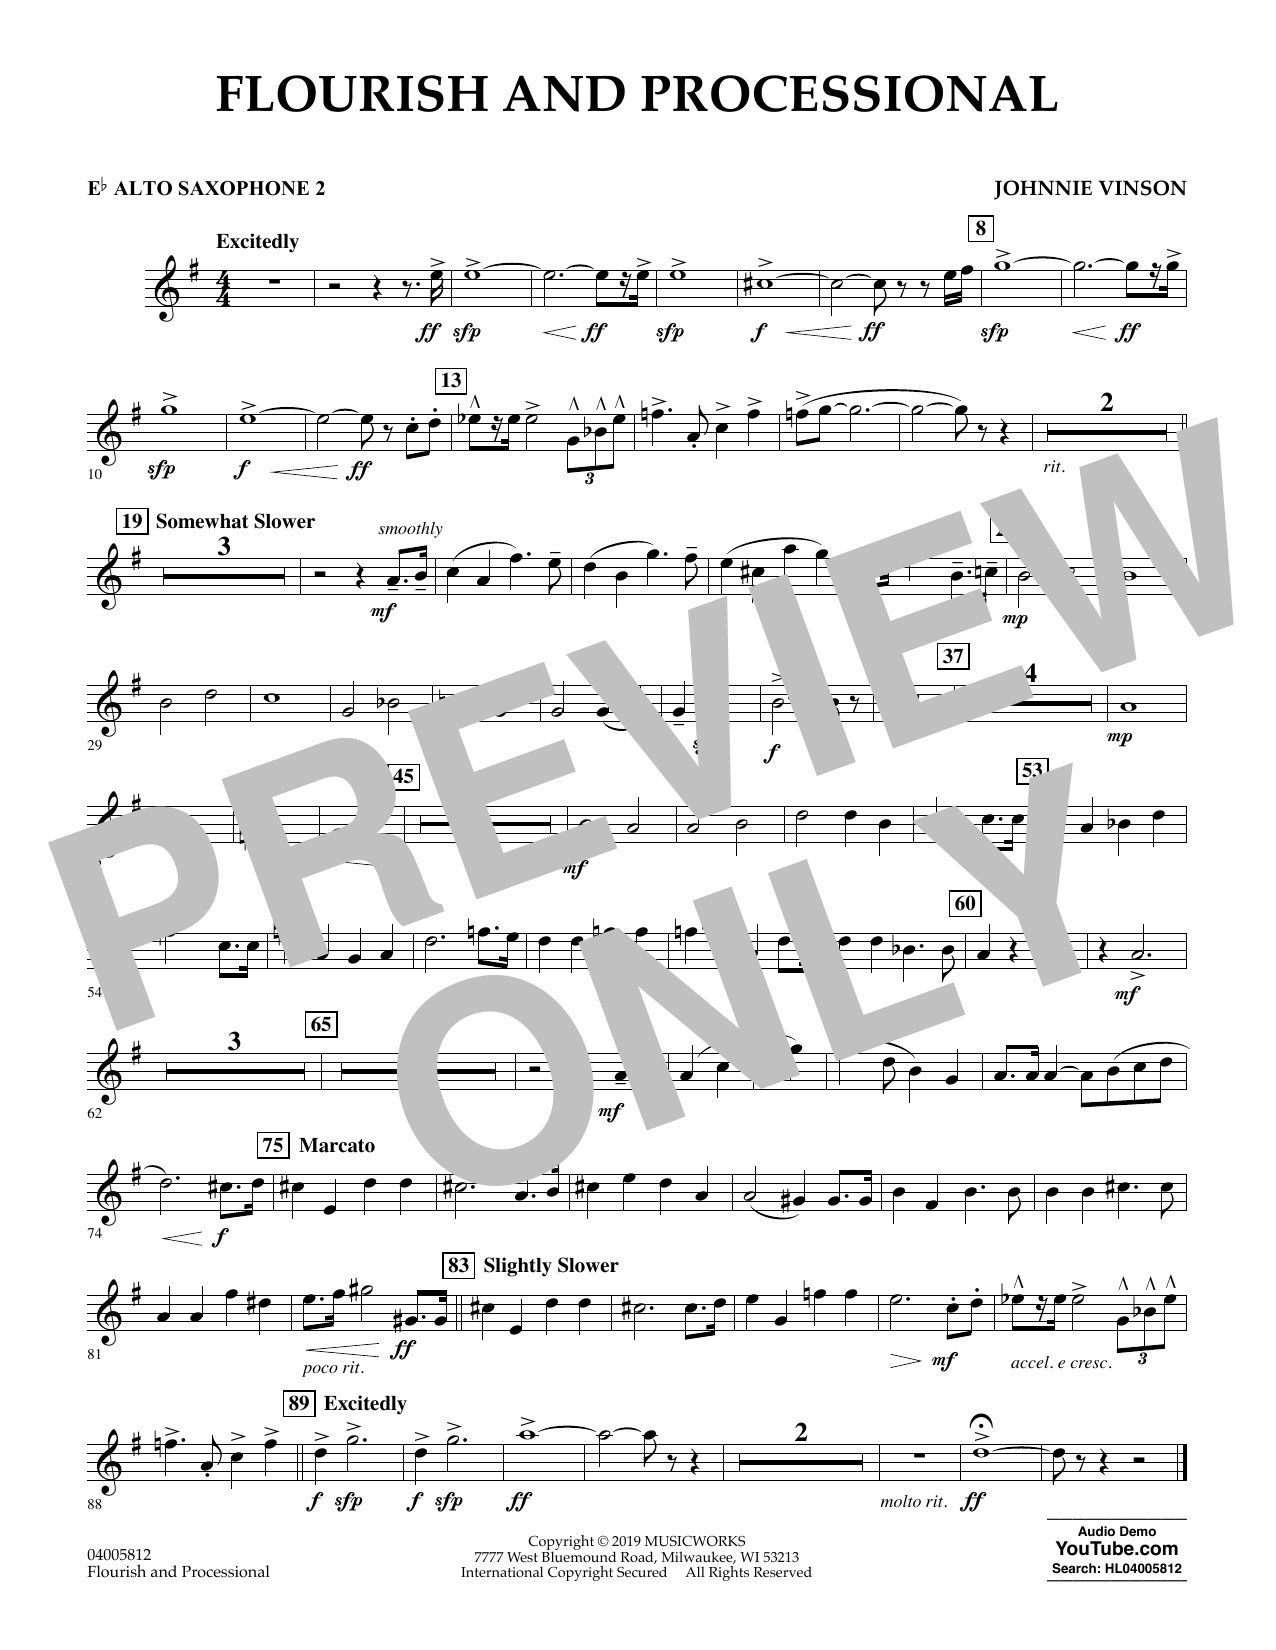 Johnnie Vinson Flourish and Processional - Eb Alto Saxophone 2 sheet music preview music notes and score for Concert Band including 1 page(s)